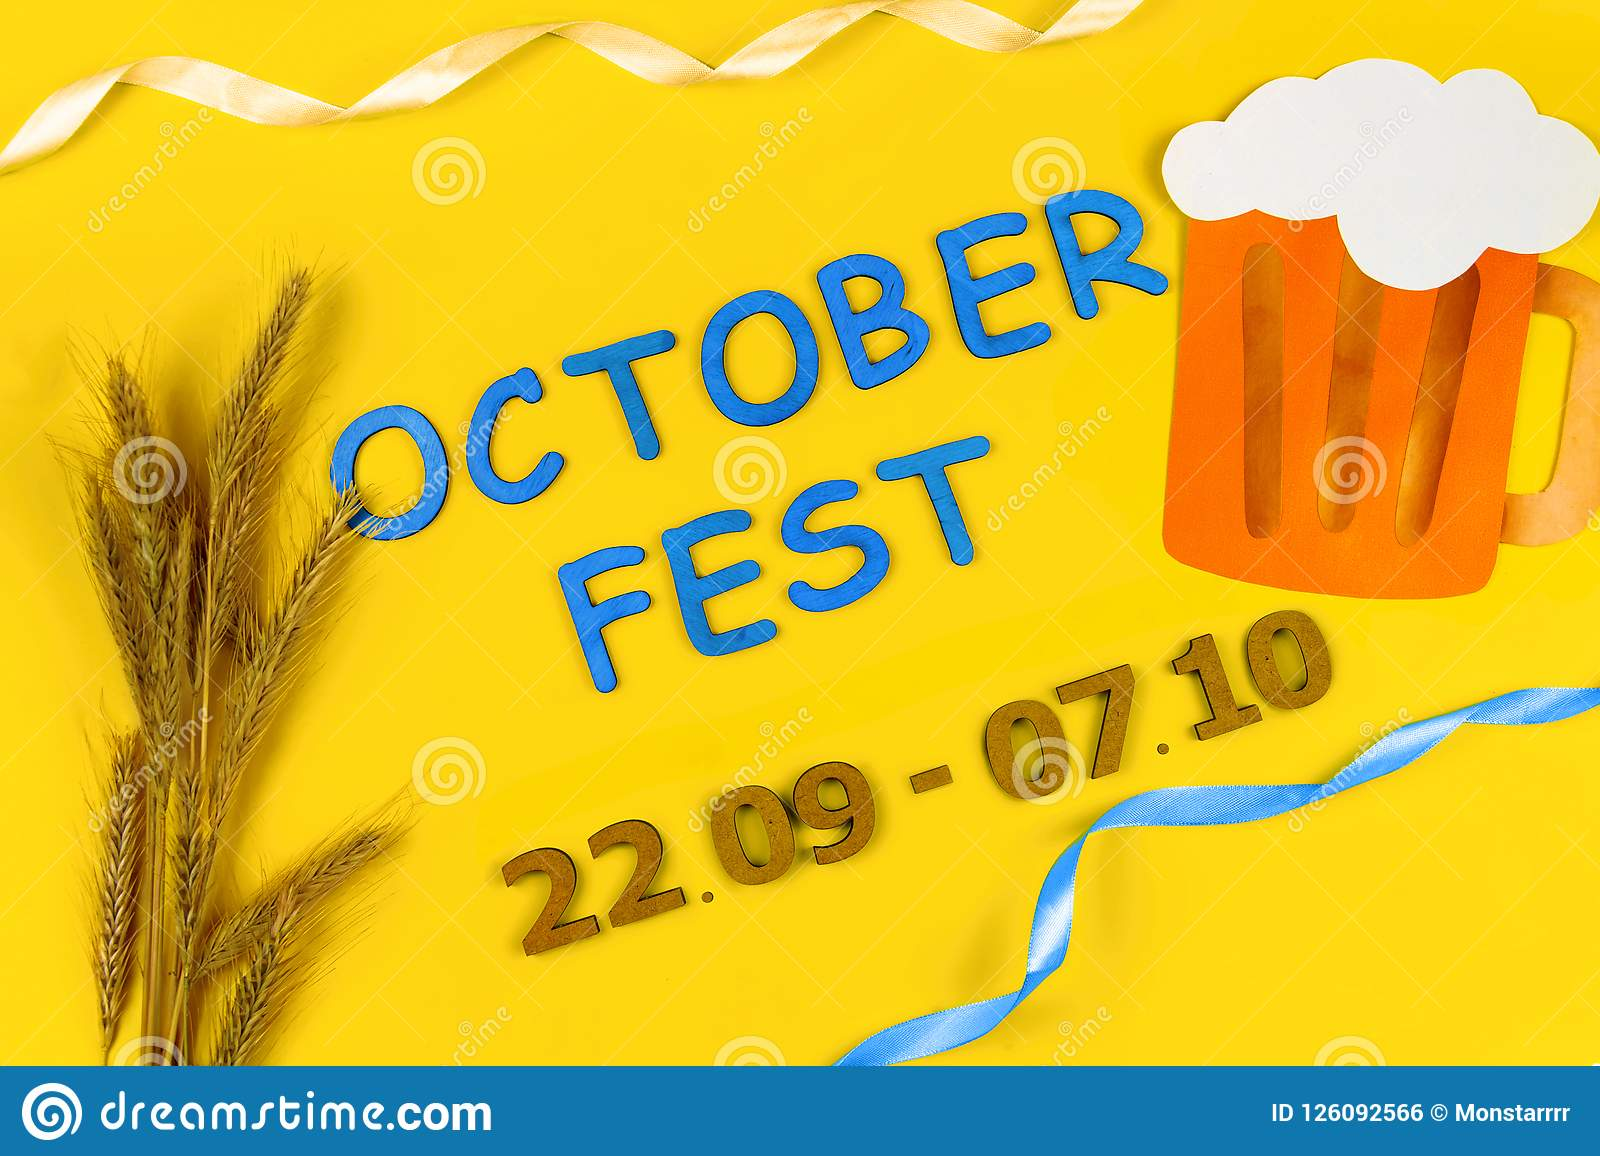 Ads event of october beer festival in autumn october month